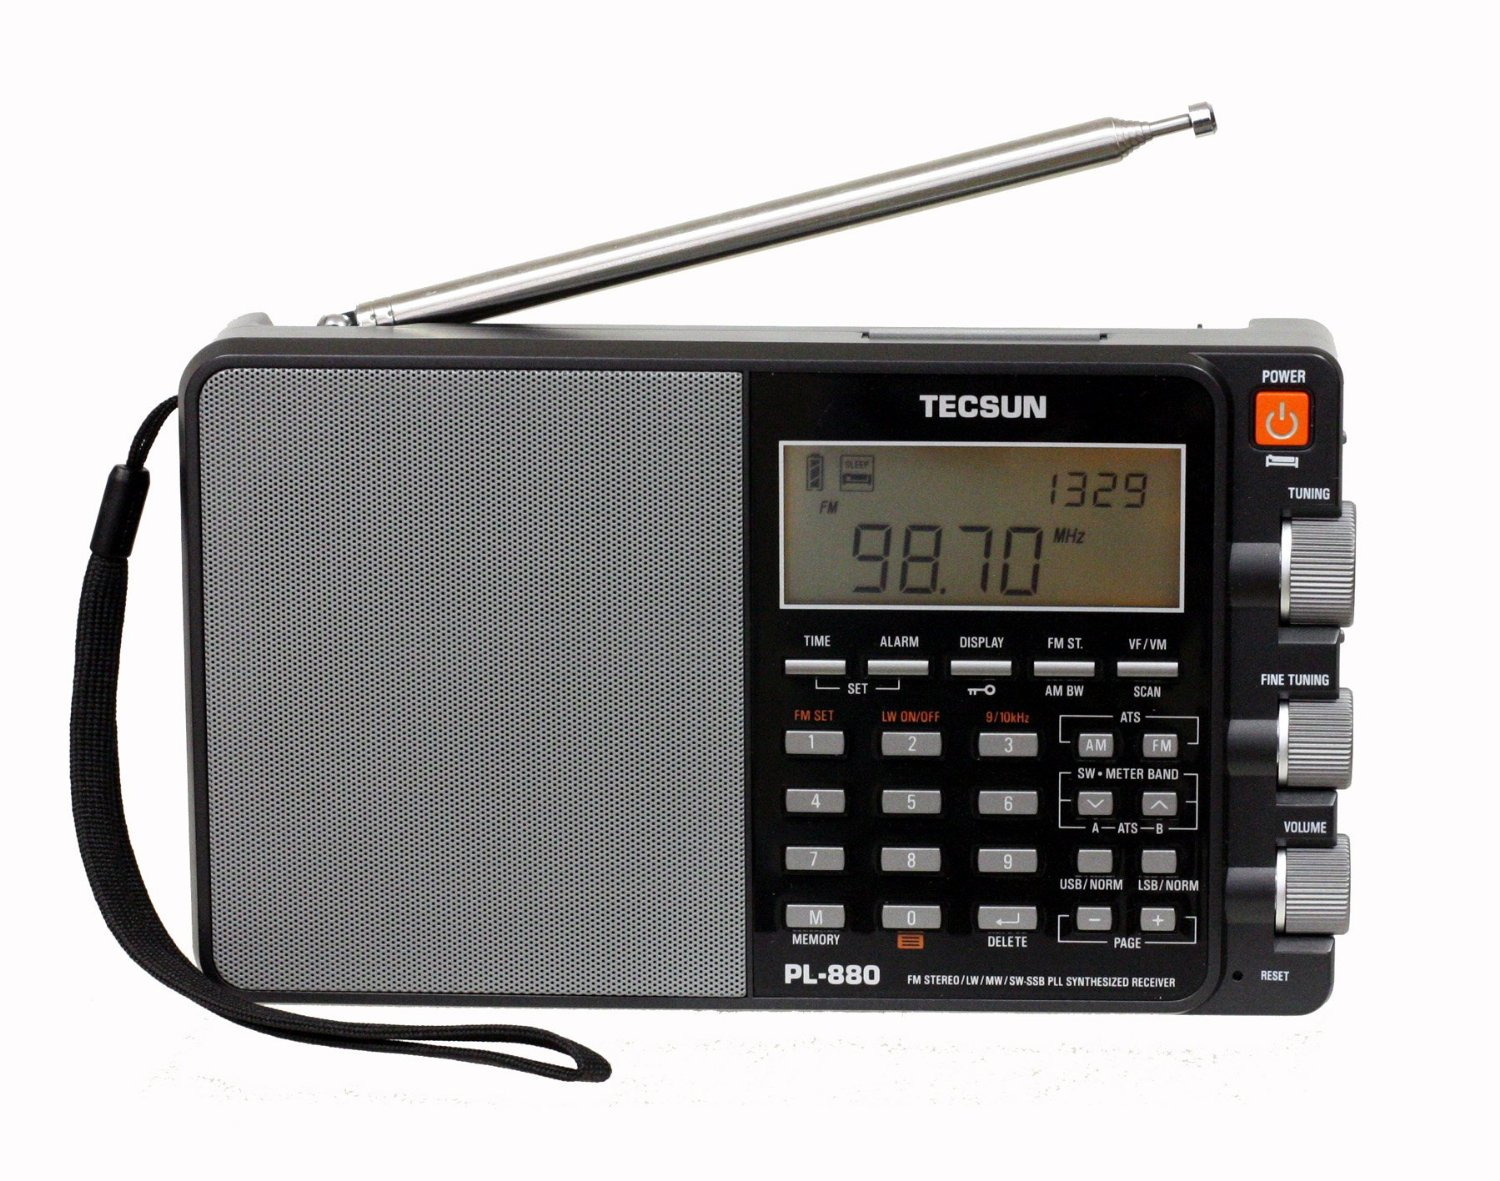 tecsun pl 880 am fm sw ssb portable radio radiojayallen. Black Bedroom Furniture Sets. Home Design Ideas